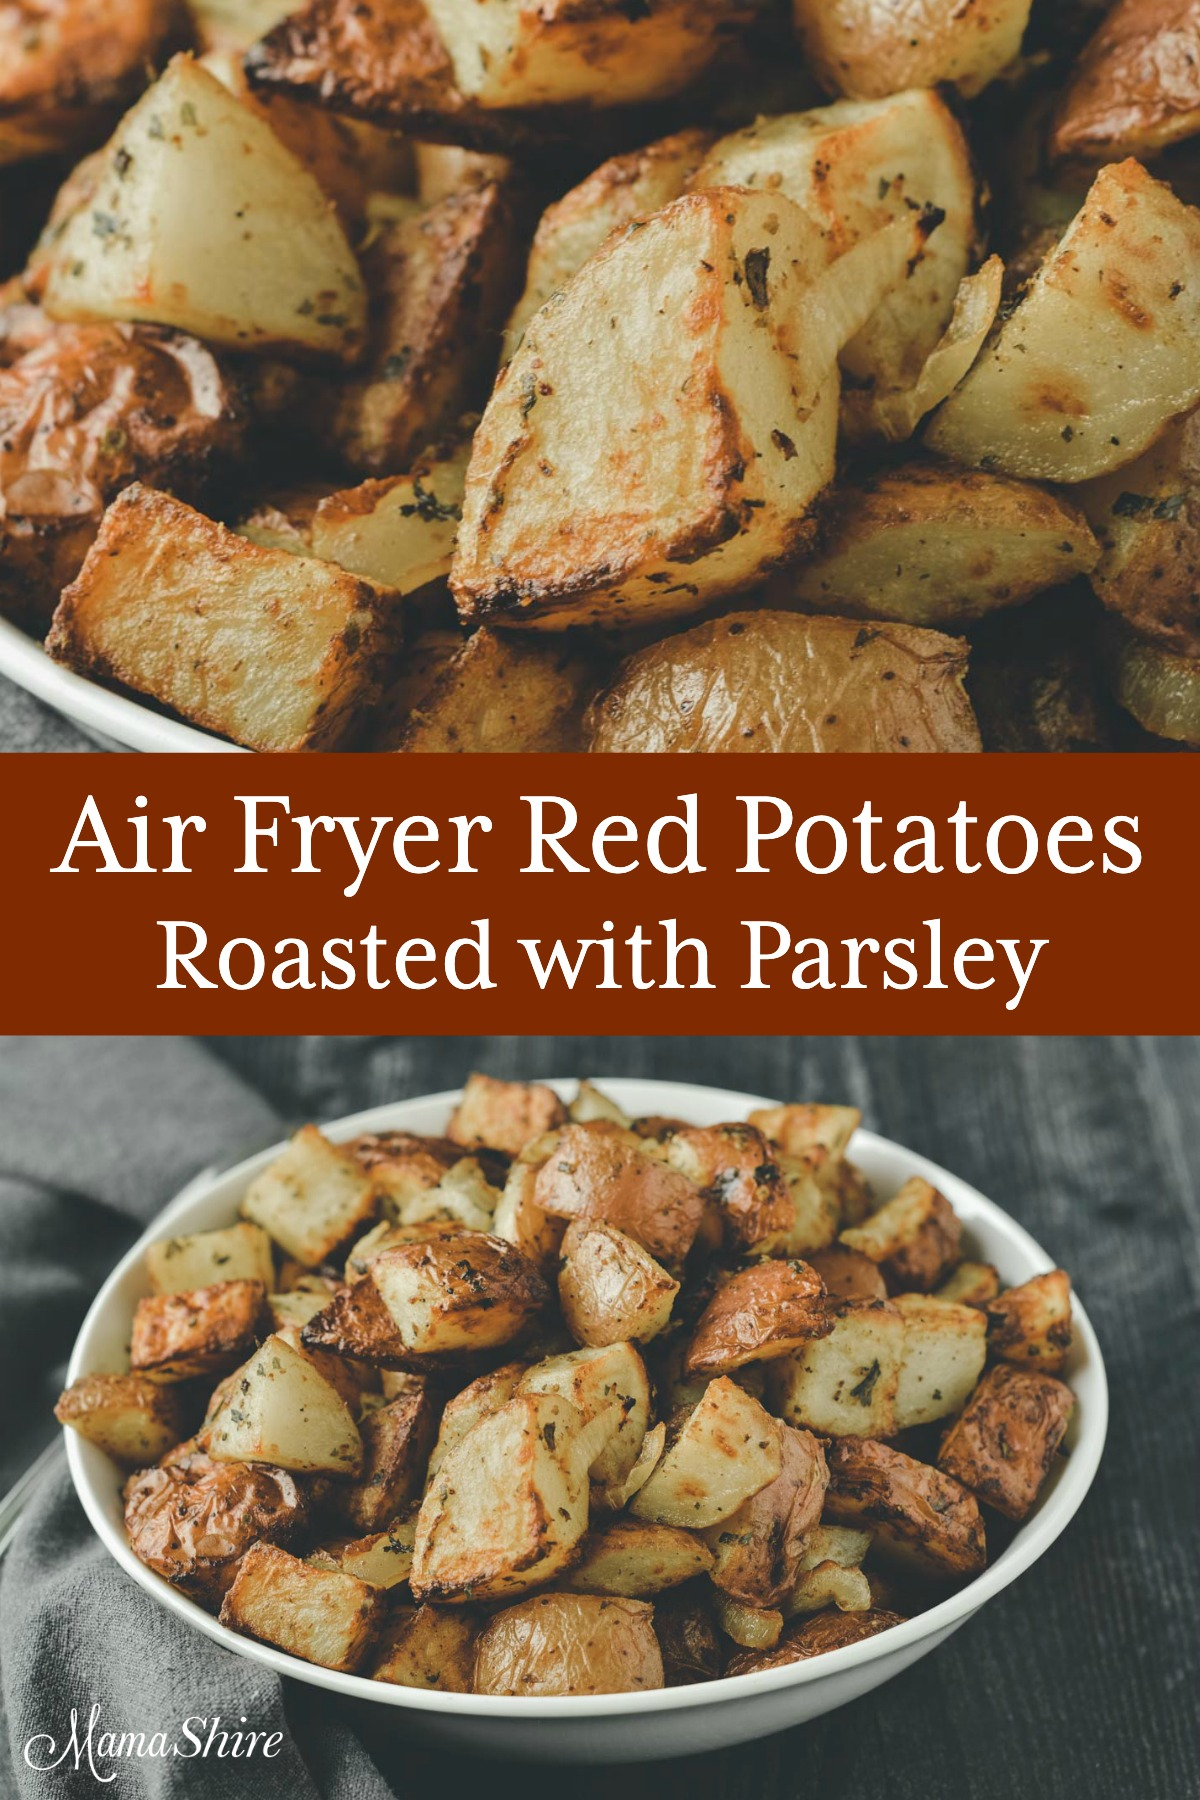 A side dish of air fryer red potatoes. They're roasted with parsley and mustard.